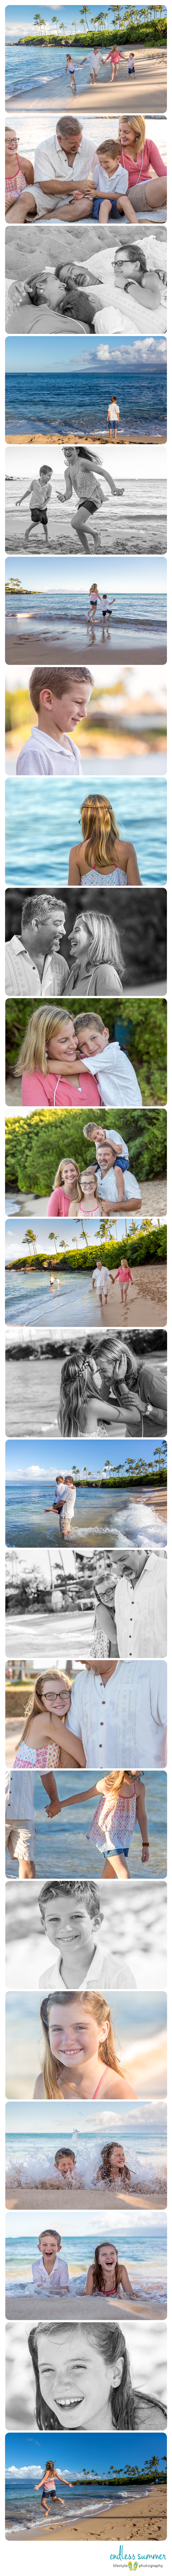 Maui_Family_Photography_Session